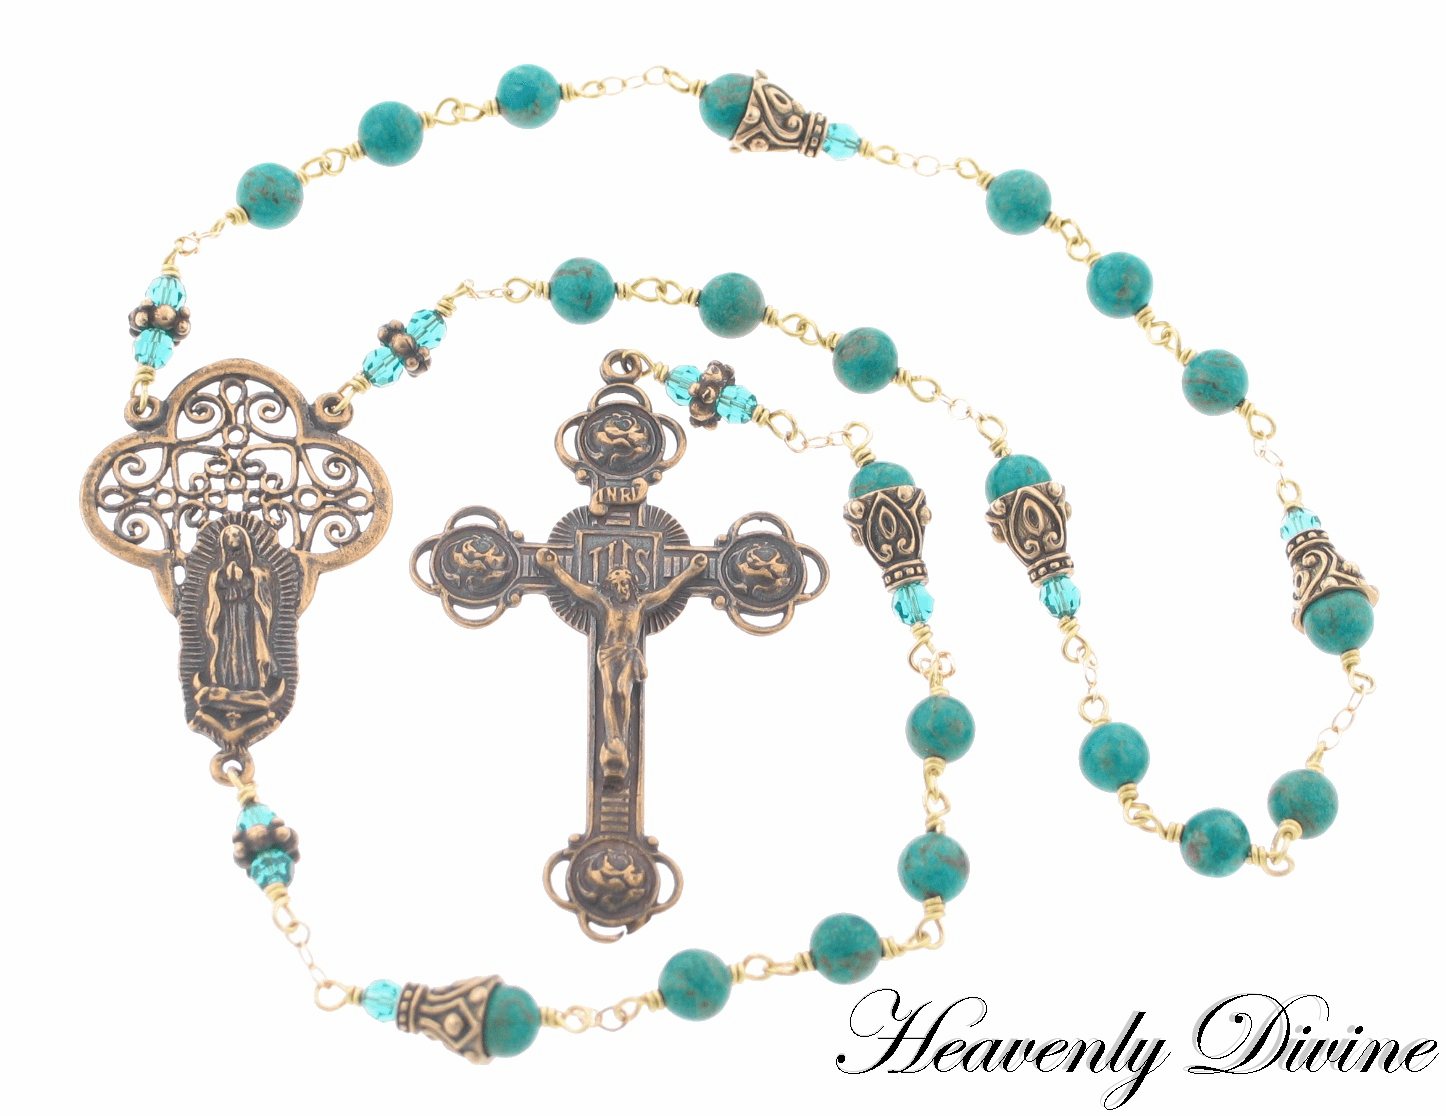 Handmade Our Lady of Guadalupe Chaplet by Heavenly Divine